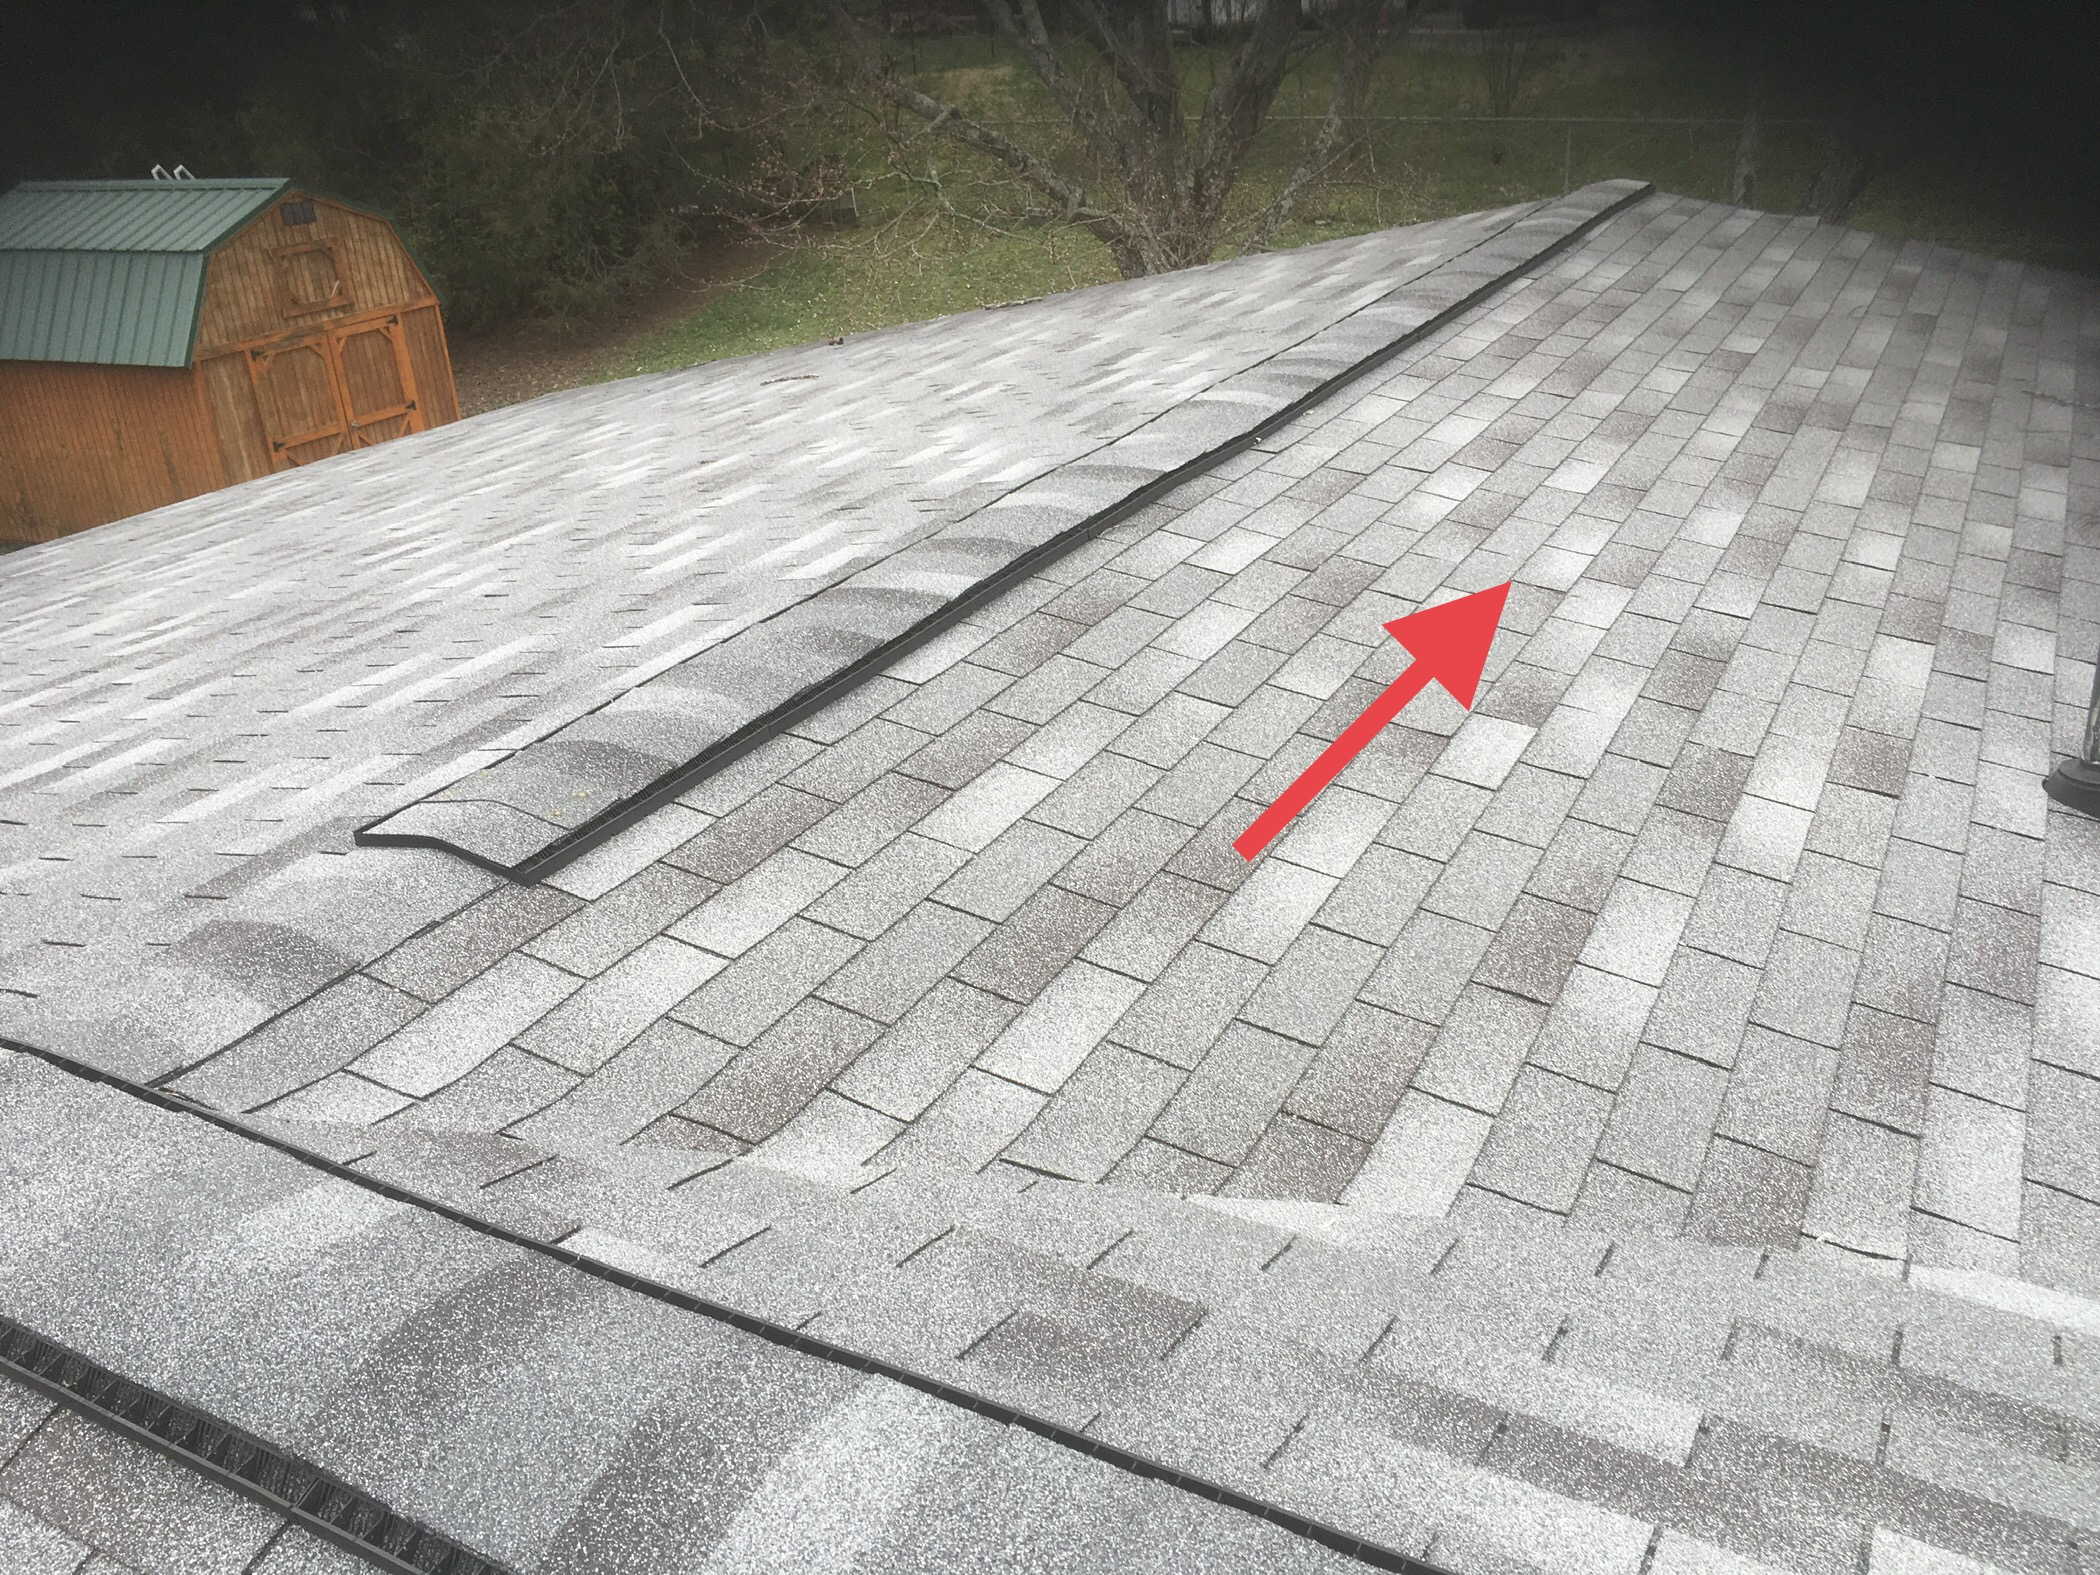 this section of this roof has soft spot, it is not anything that is causing a problem or needs to be repaired